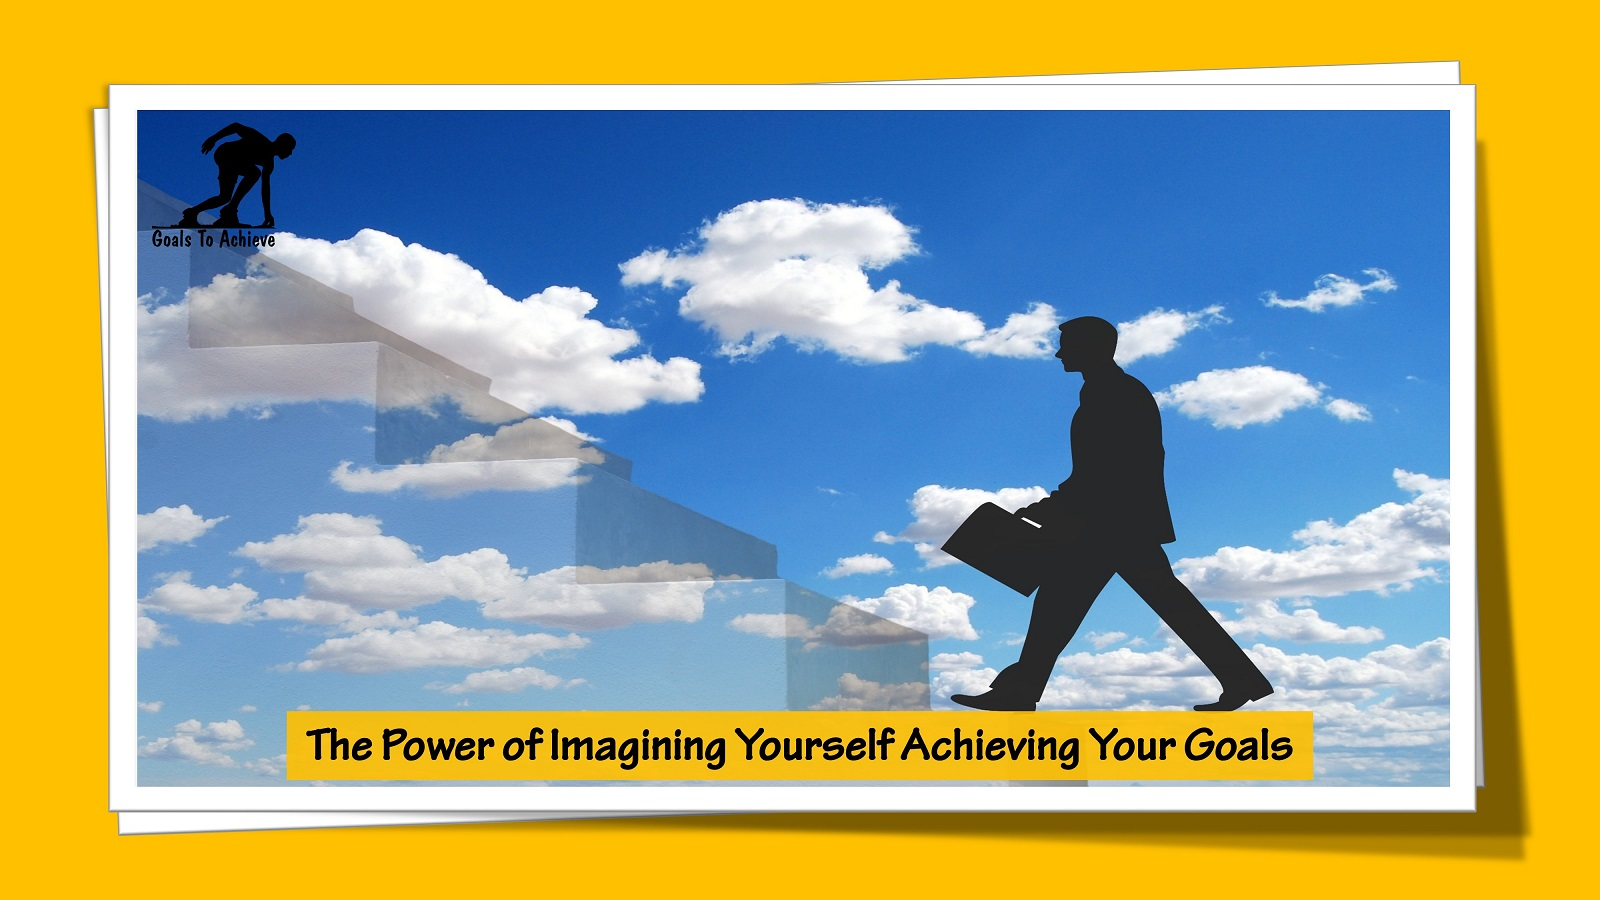 The Power of Imagining Yourself Achieving Your Goals